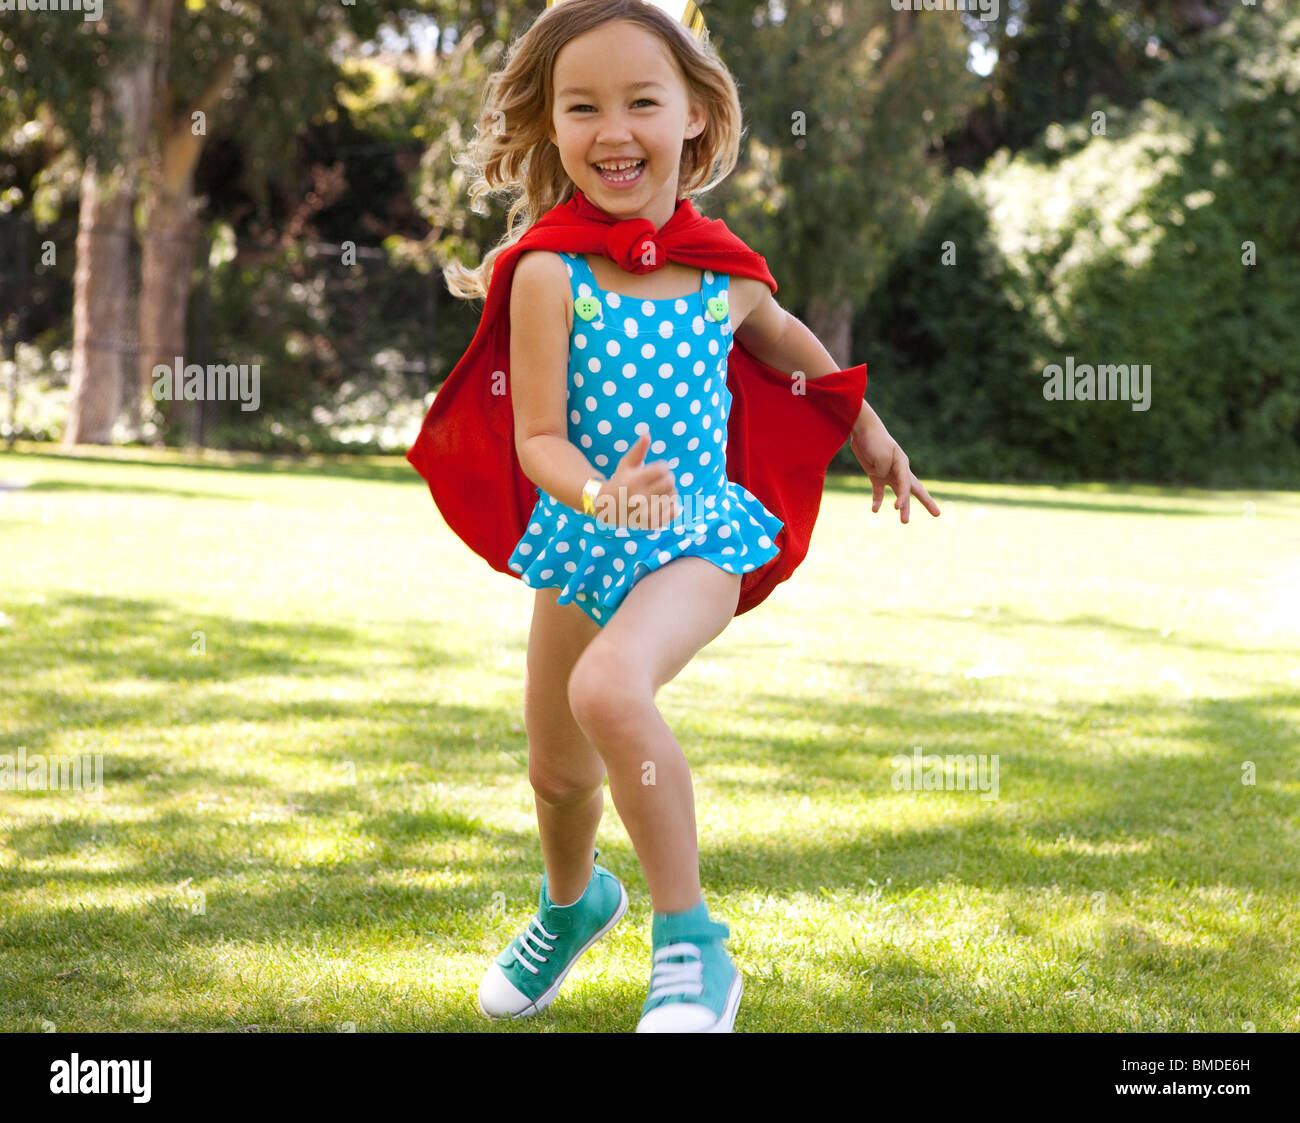 Girl in polka dot bathing suit and red cape running Stock Photo